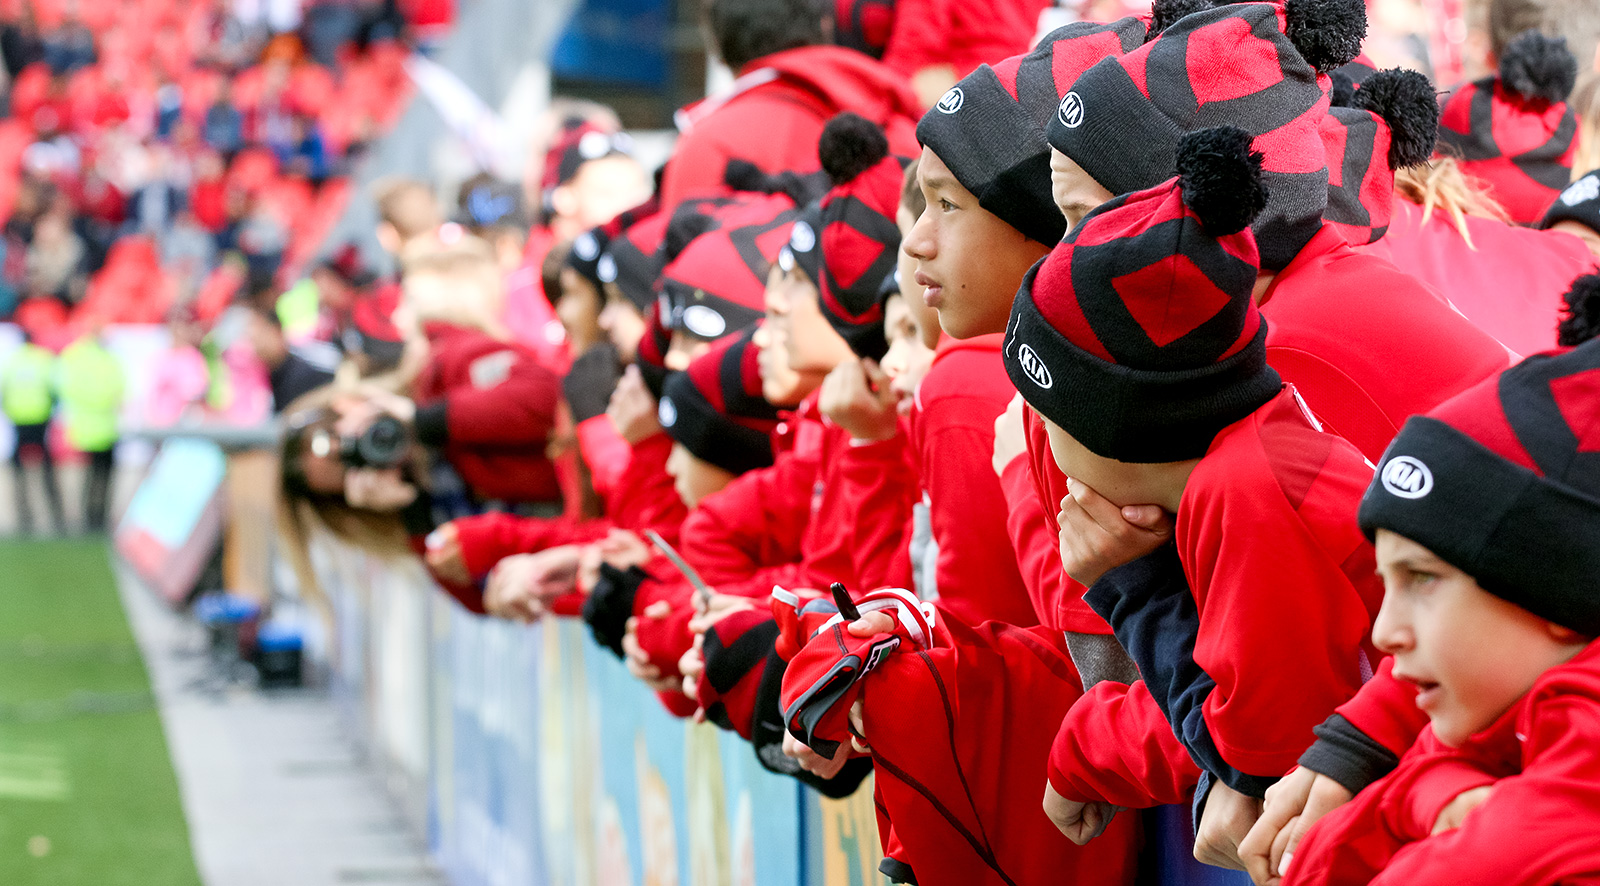 Young TFC fans watching the practice from the sidelines before the match begins.